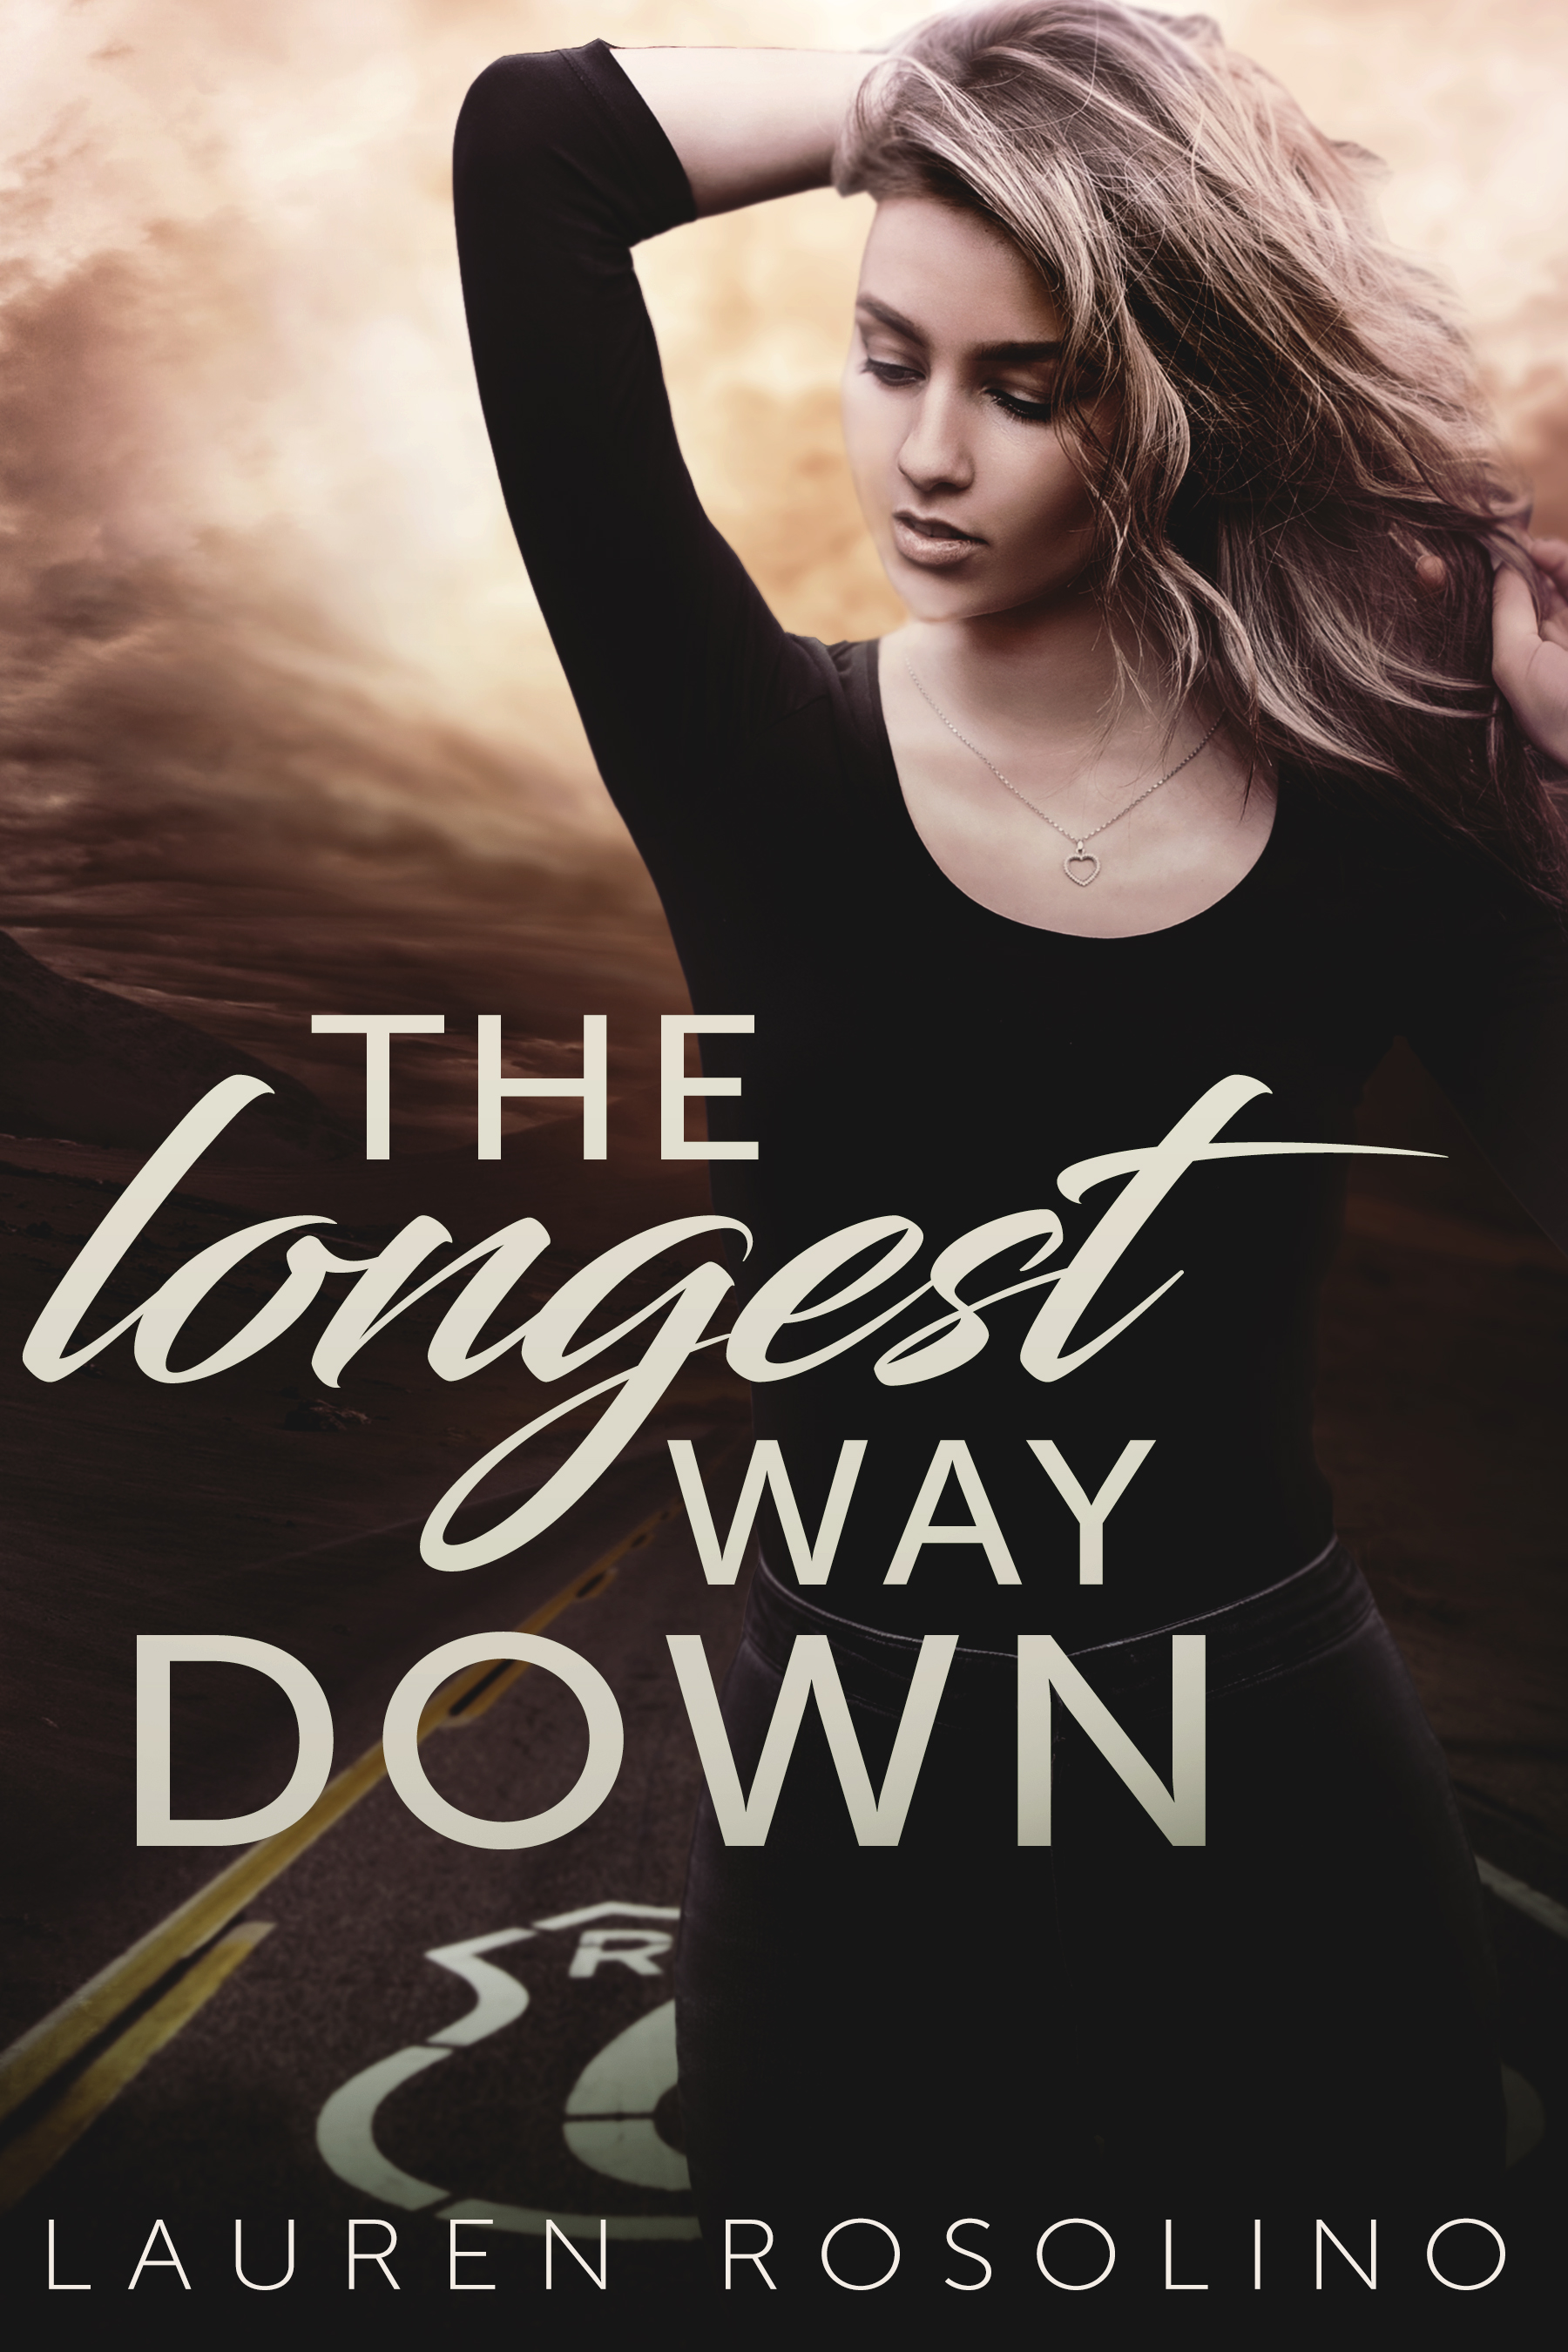 The Longest Way Down by Lauren Rosolino